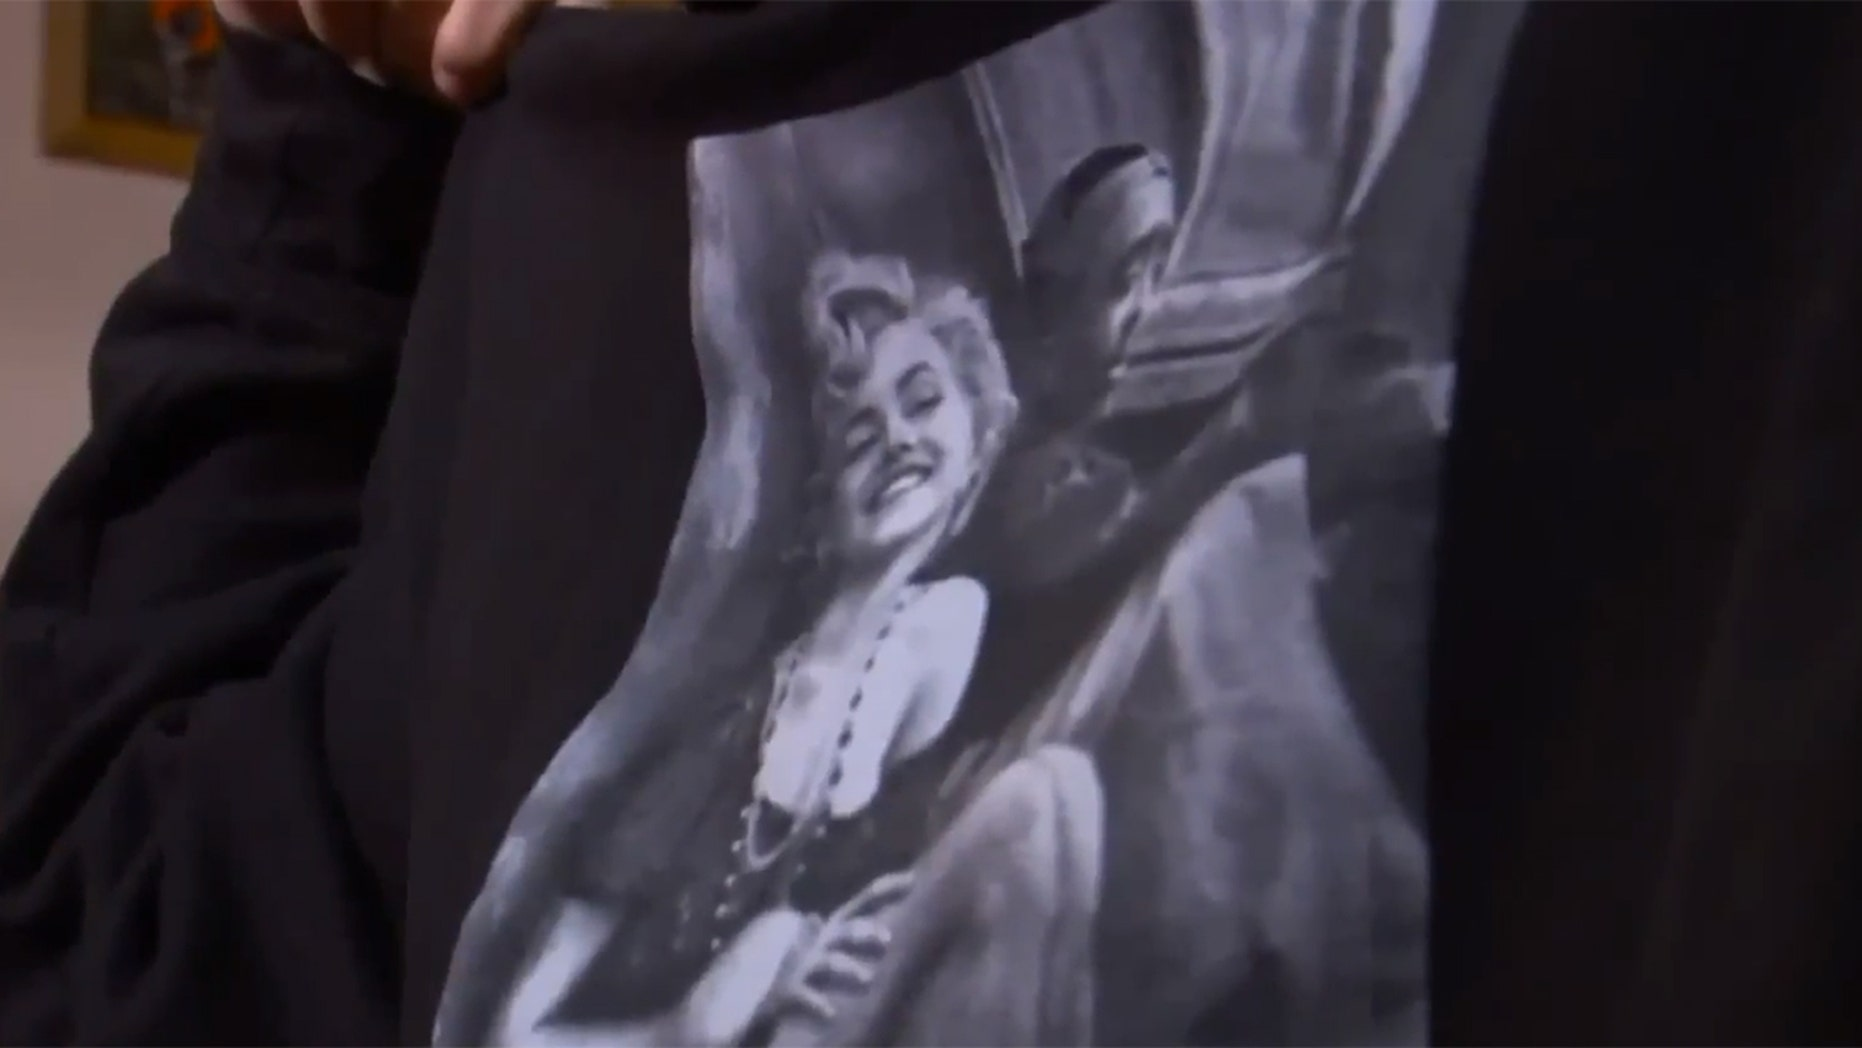 A sweatshirt showing Marilyn Monroe's shoulders was considered a violation of this high school's dress code.